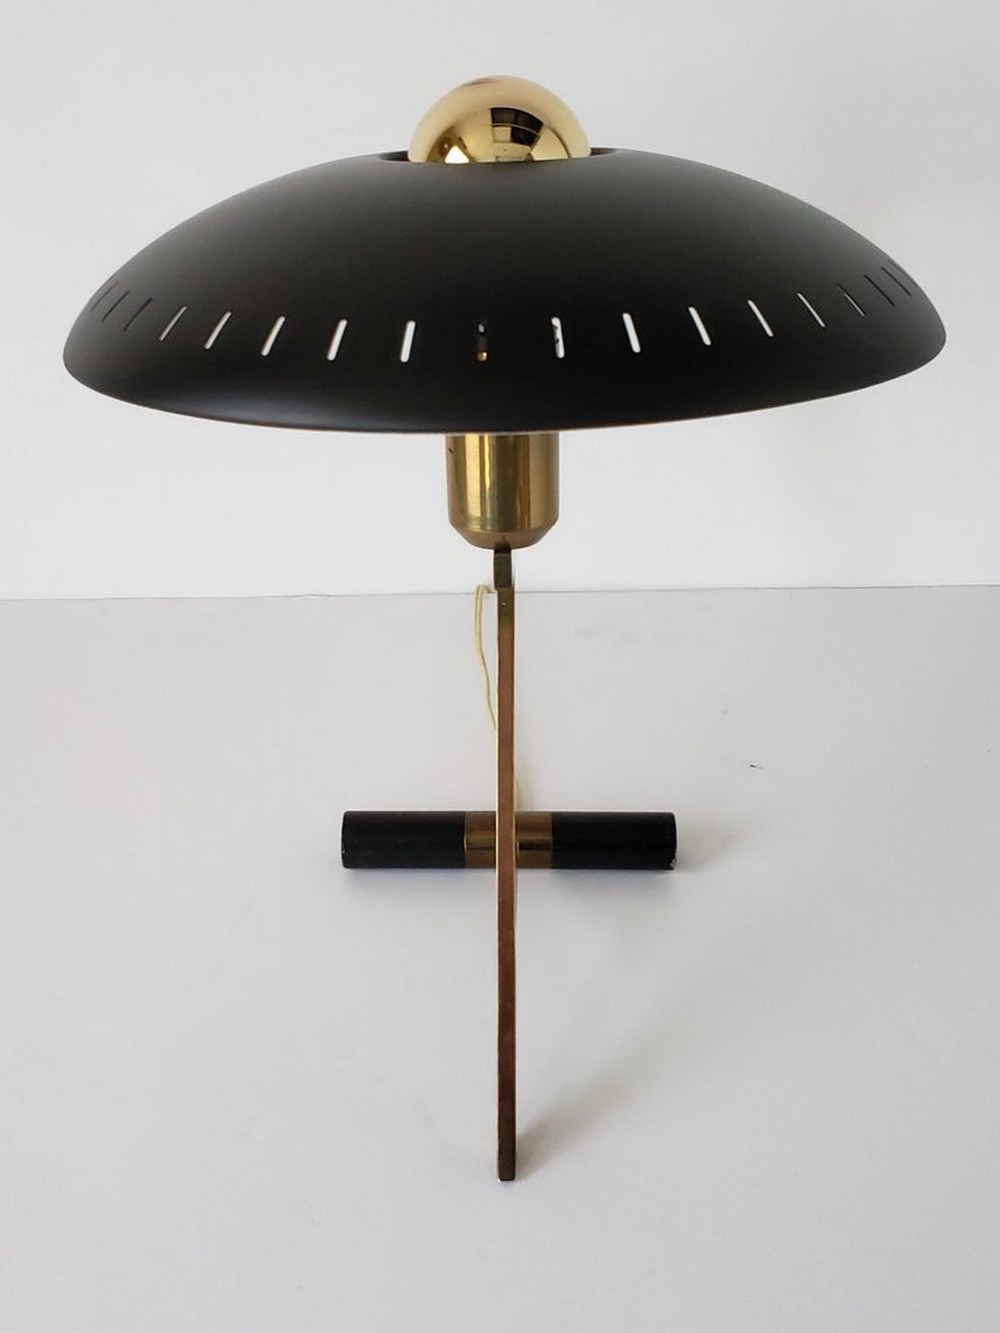 7 Bespoke Table Lamp Designs That Are At The 1stdibs Online Store 1stdibs 7 Bespoke Table Lamp Designs That Are At The 1stdibs Online Store 7 Bespoke Table Lamp Designs That Are At The 1stdibs Online Store 5